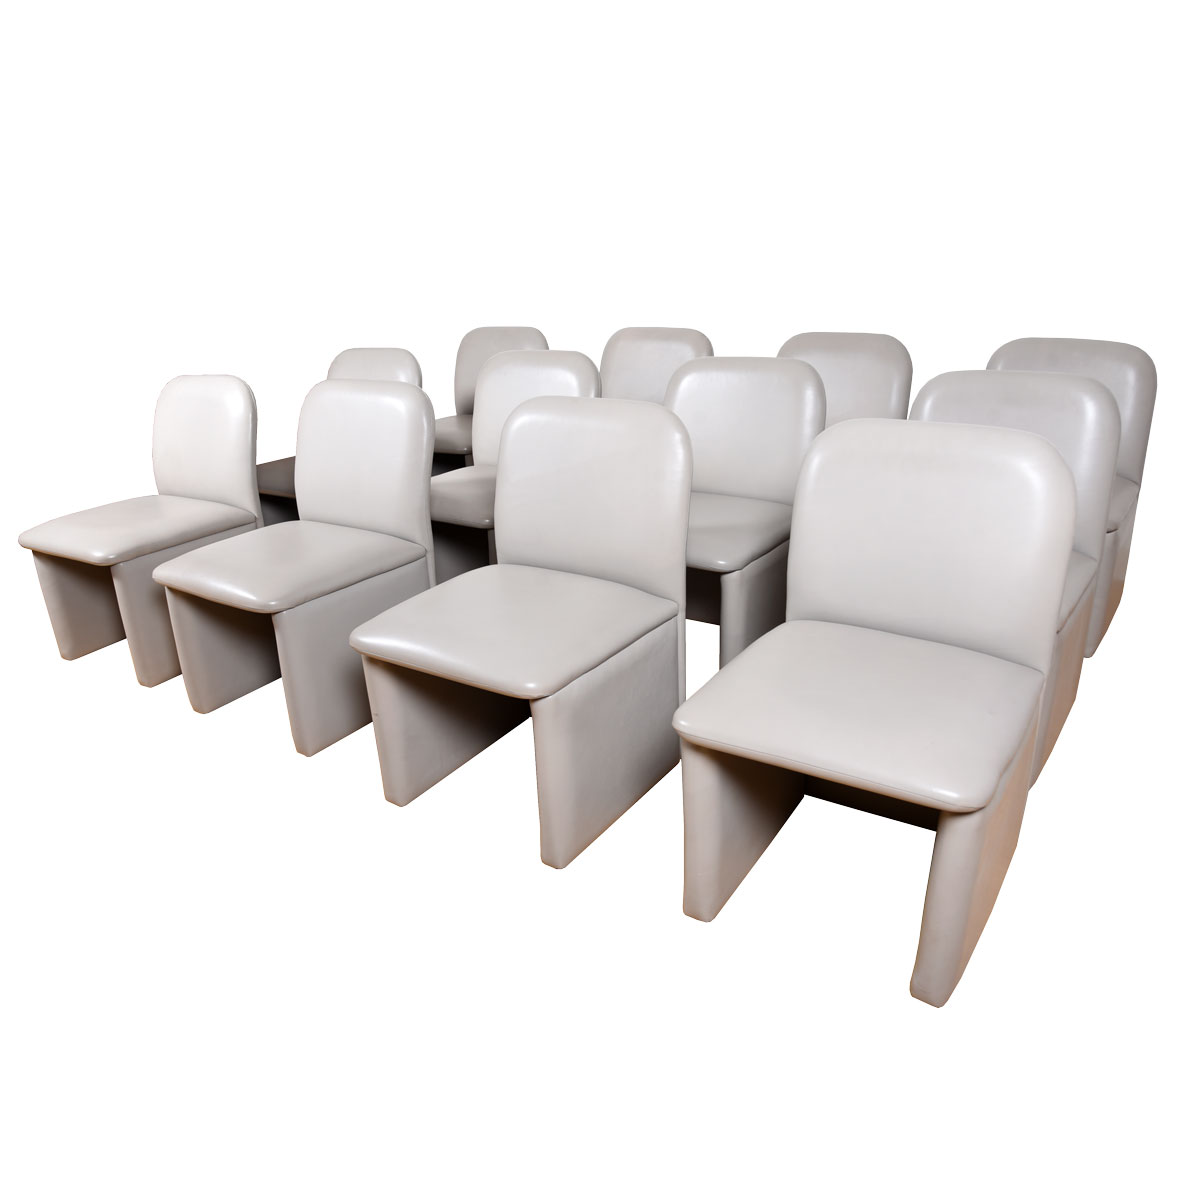 Set of 12 Contemporary Dining | Conference Chairs Fully Upholstered in Pearl Gray Leather